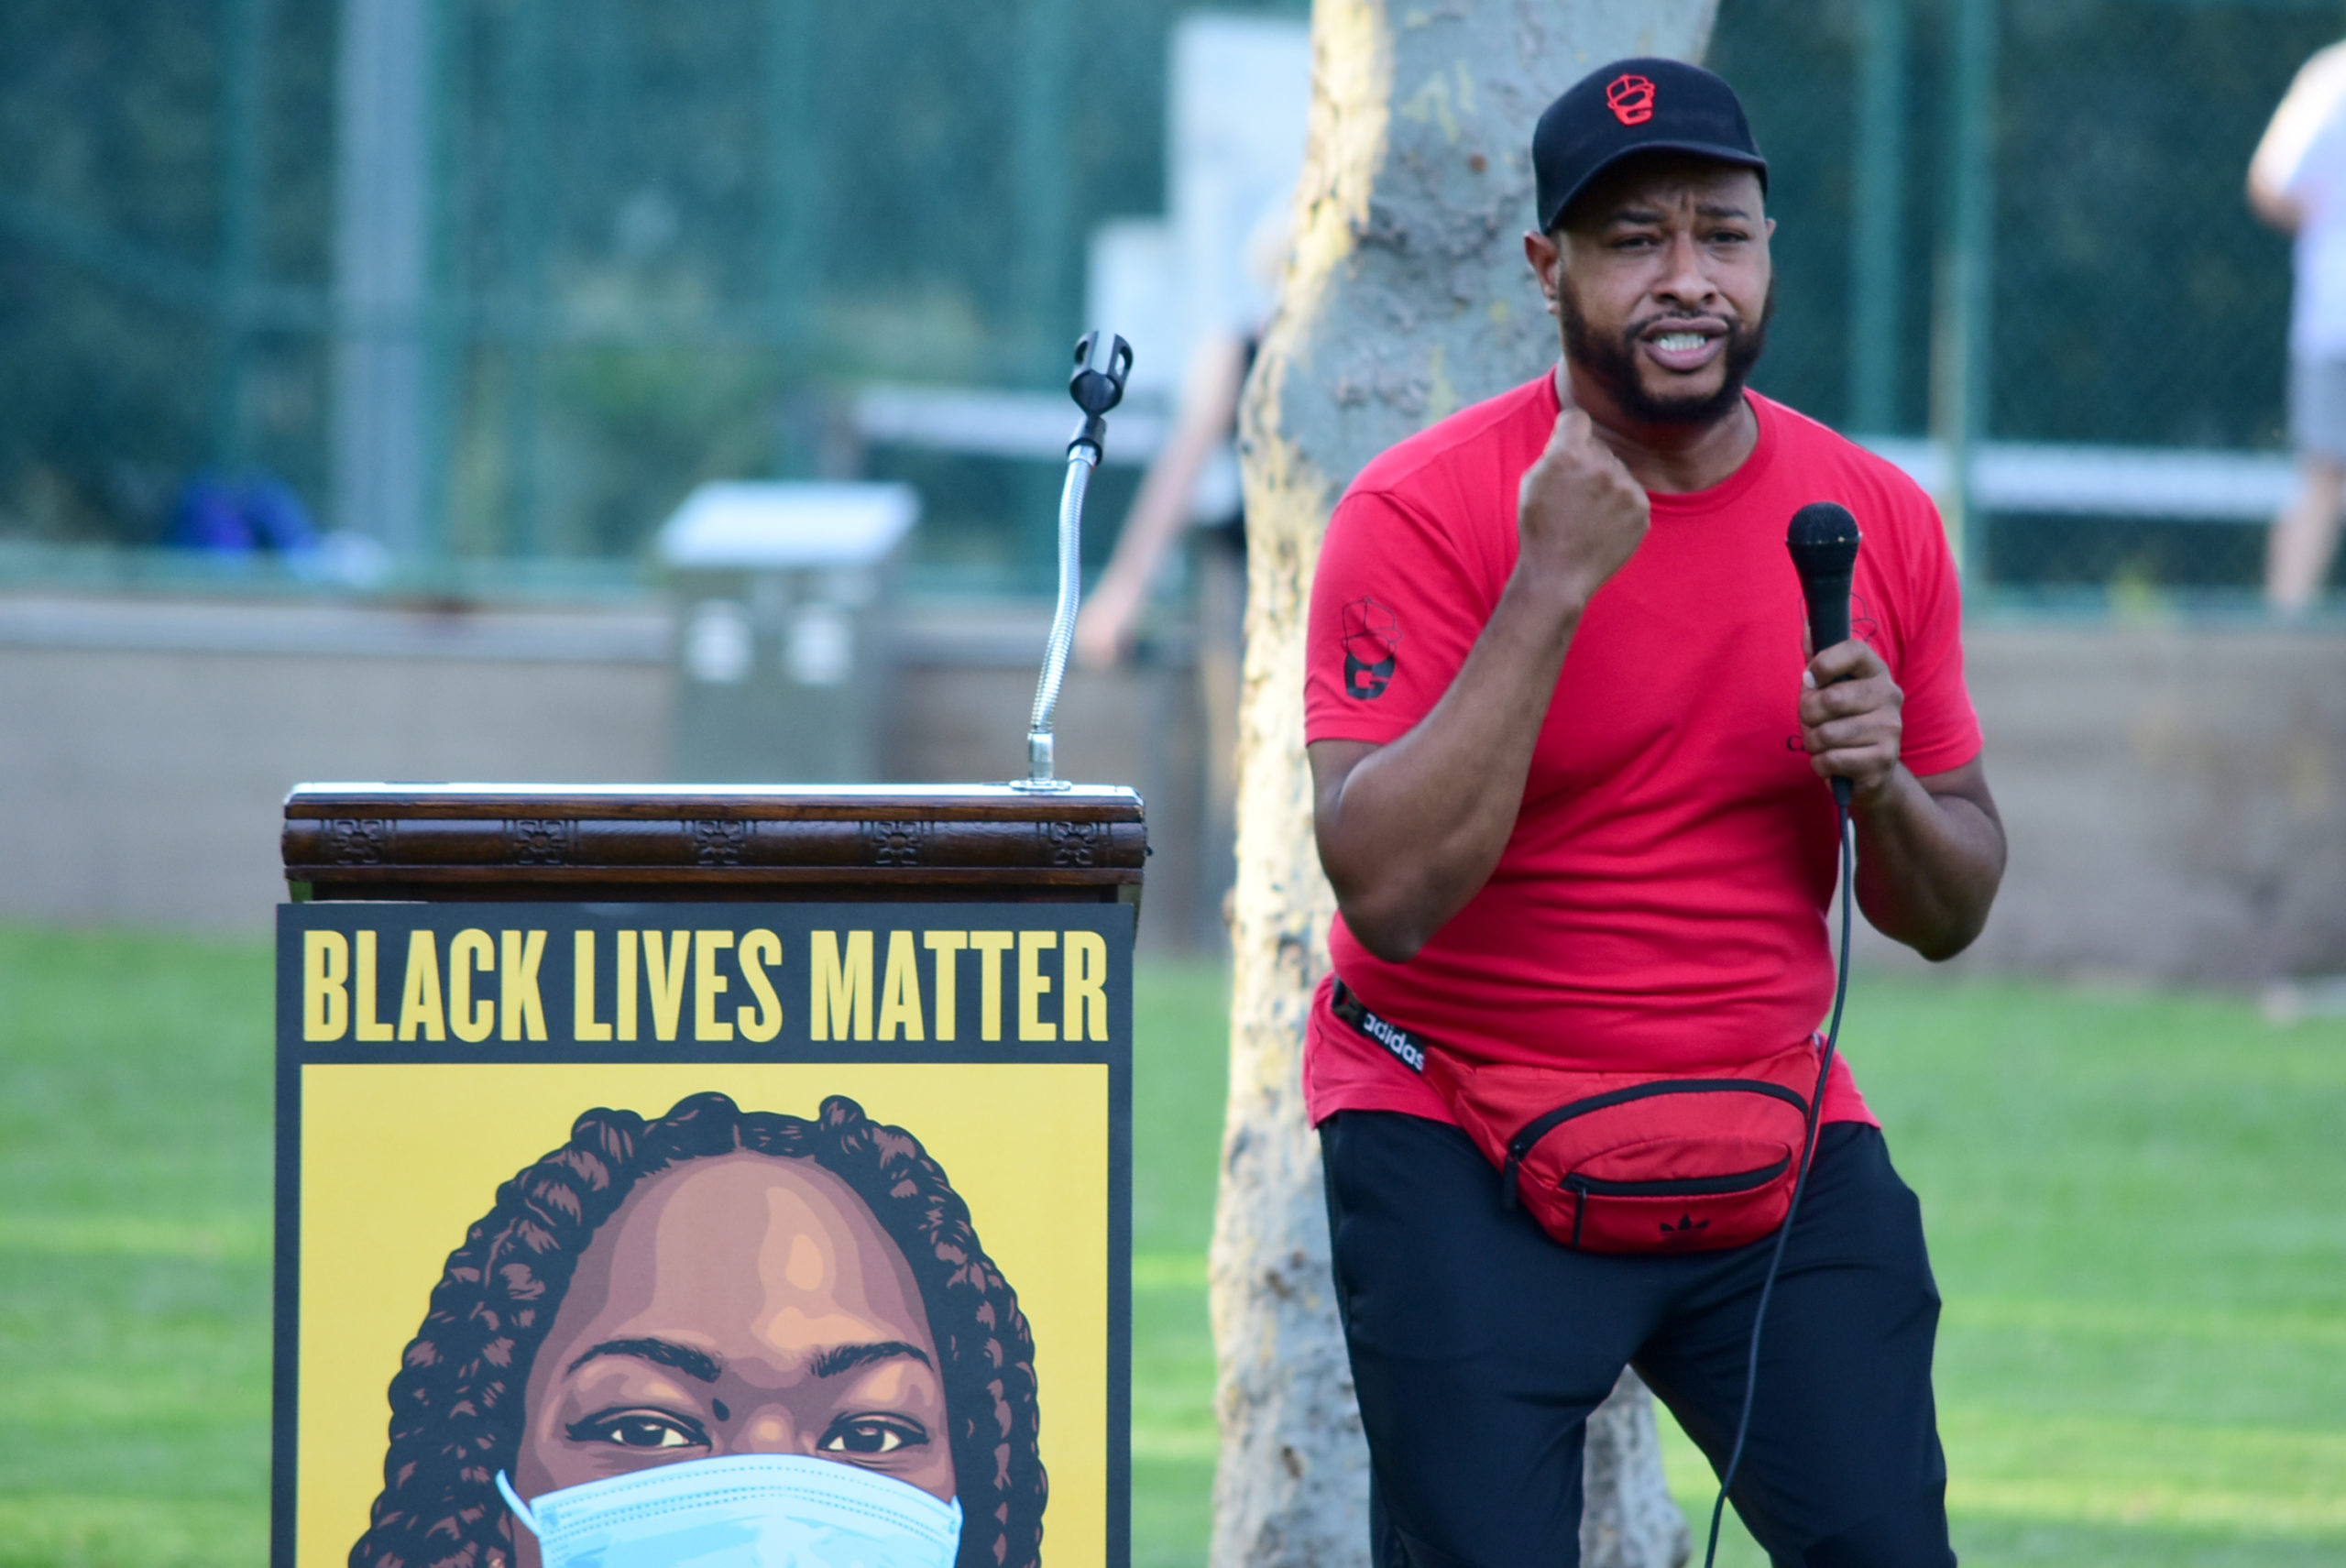 south-pasadena-news-06-25-2020-tamir-rice-vigil-memorial-sp-youth-police-reform-garfield-park-022